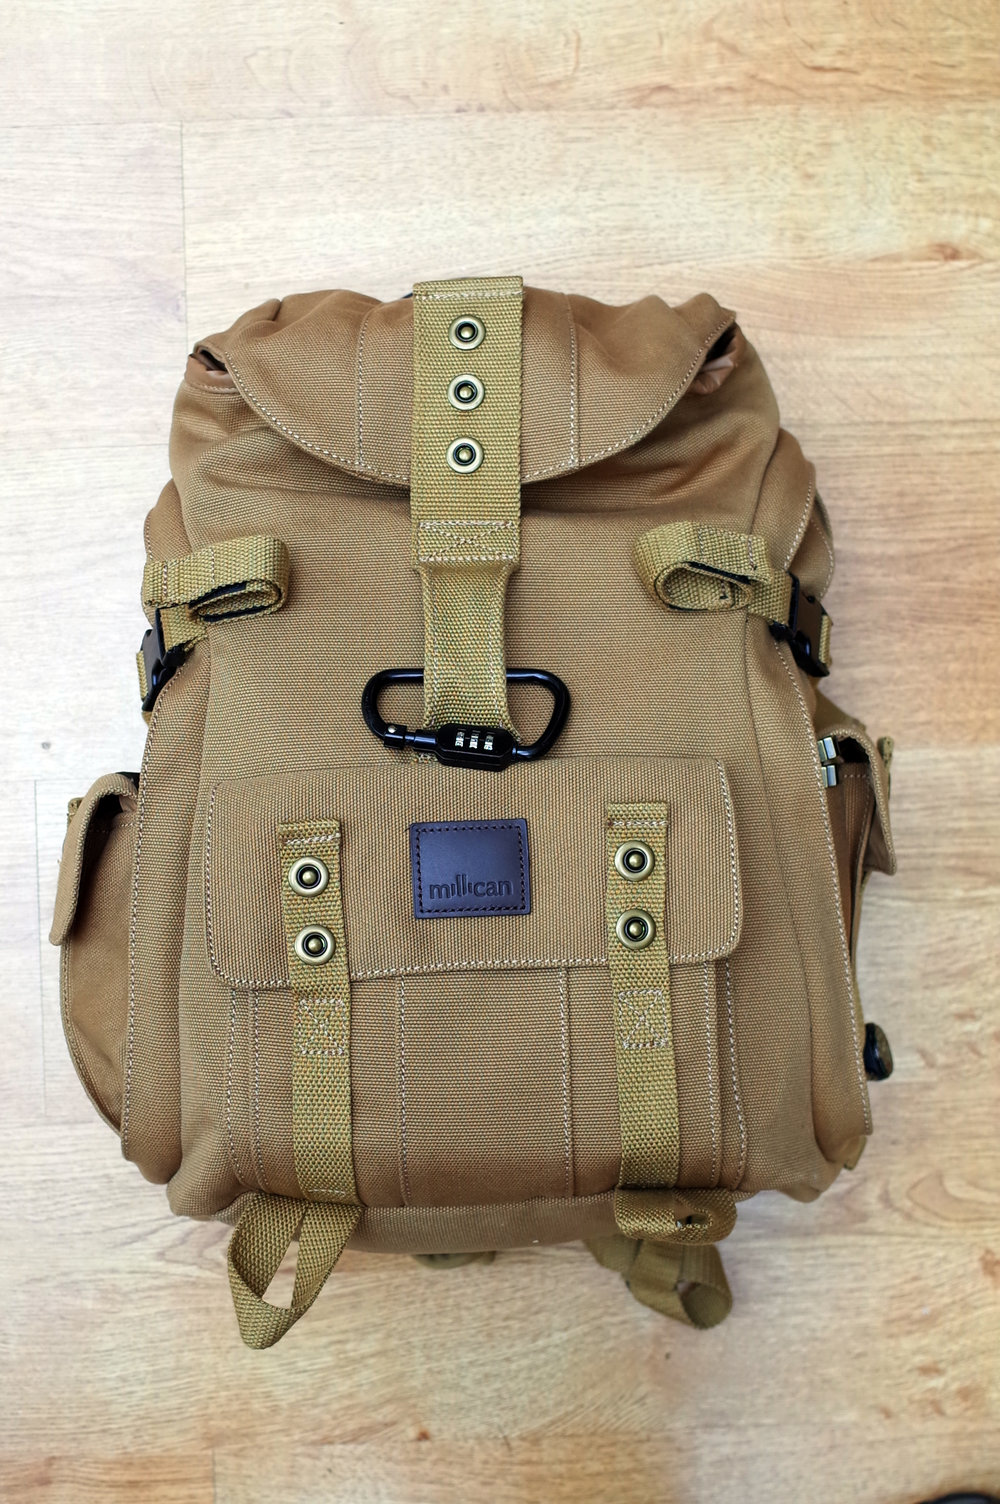 Dave the Rucksack: The bag that launched a thousand emails from Jorrit and Nicky (I exaggerate, and I like them)